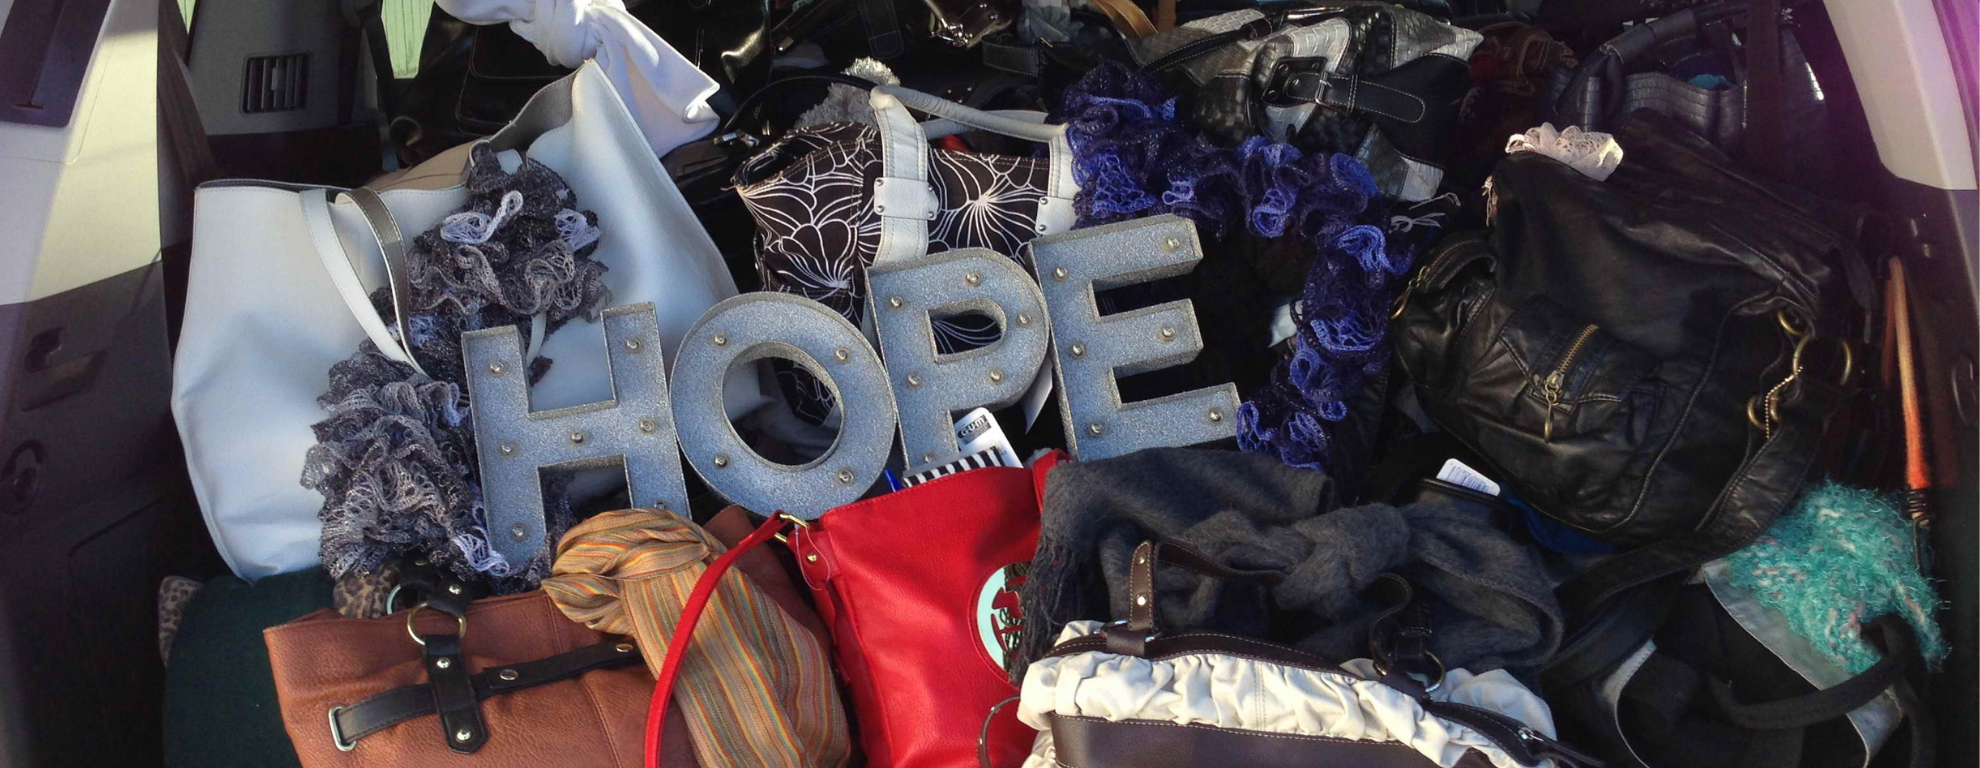 Purses of Hope donations